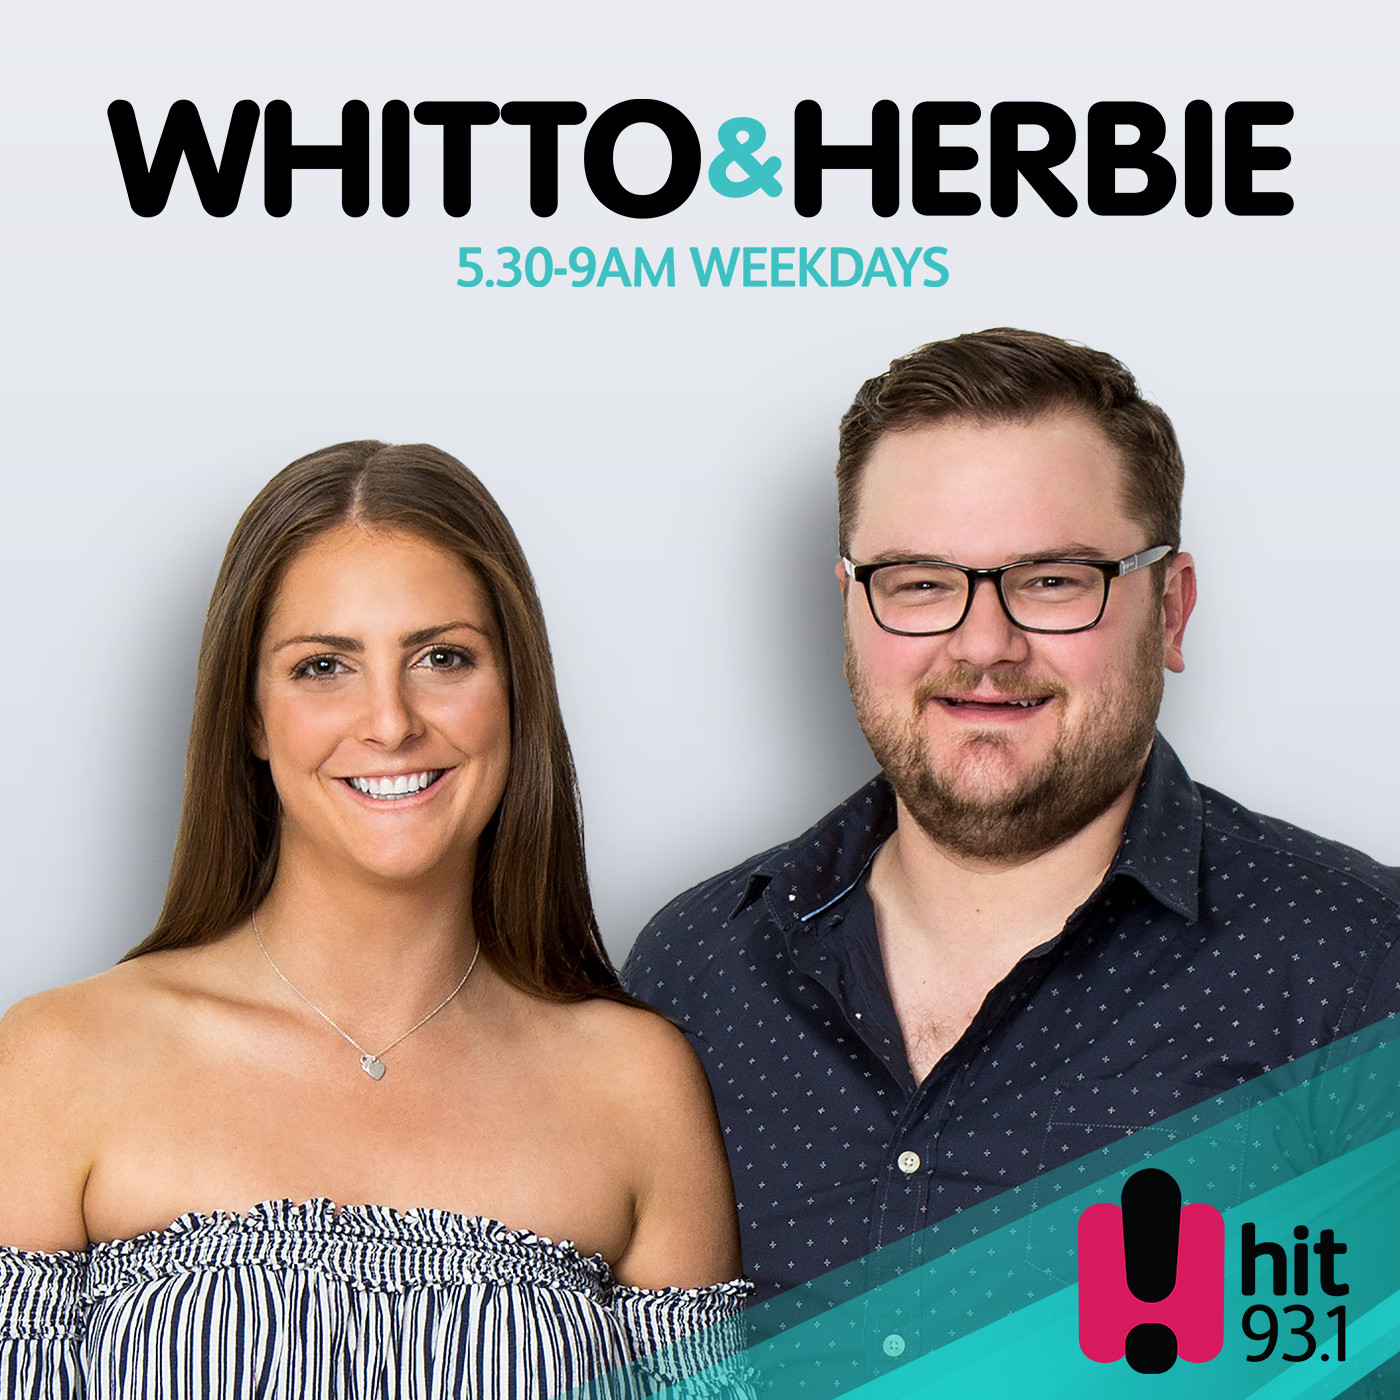 Whitto and Herbie - hit93.1 Riverina